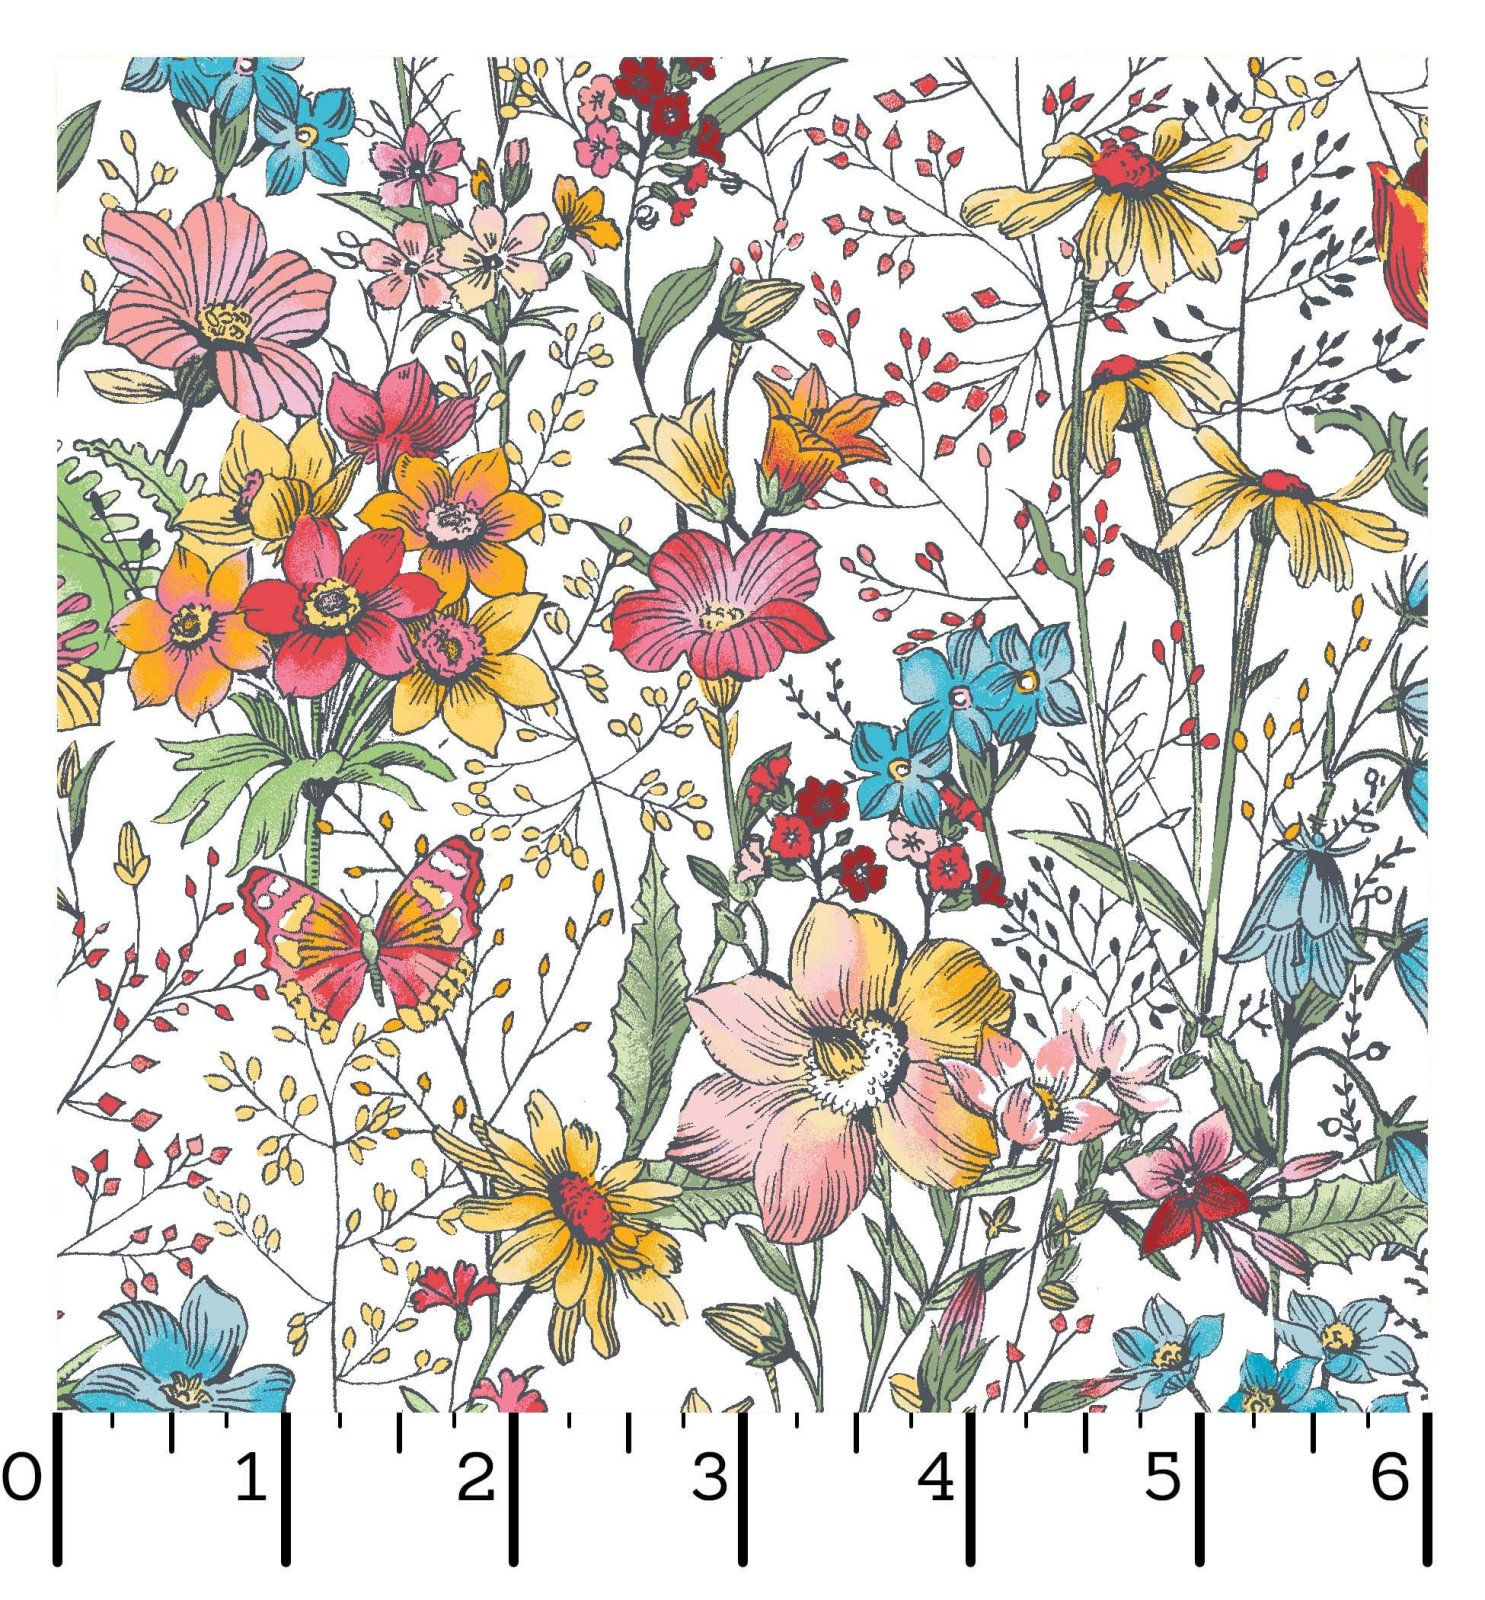 EESC-D10002 W - MEADOW EDGE BY MAYWOOD STUDIO LARGE MEADOW FLOWER WHITE - ARRIVING IN MAY 2021